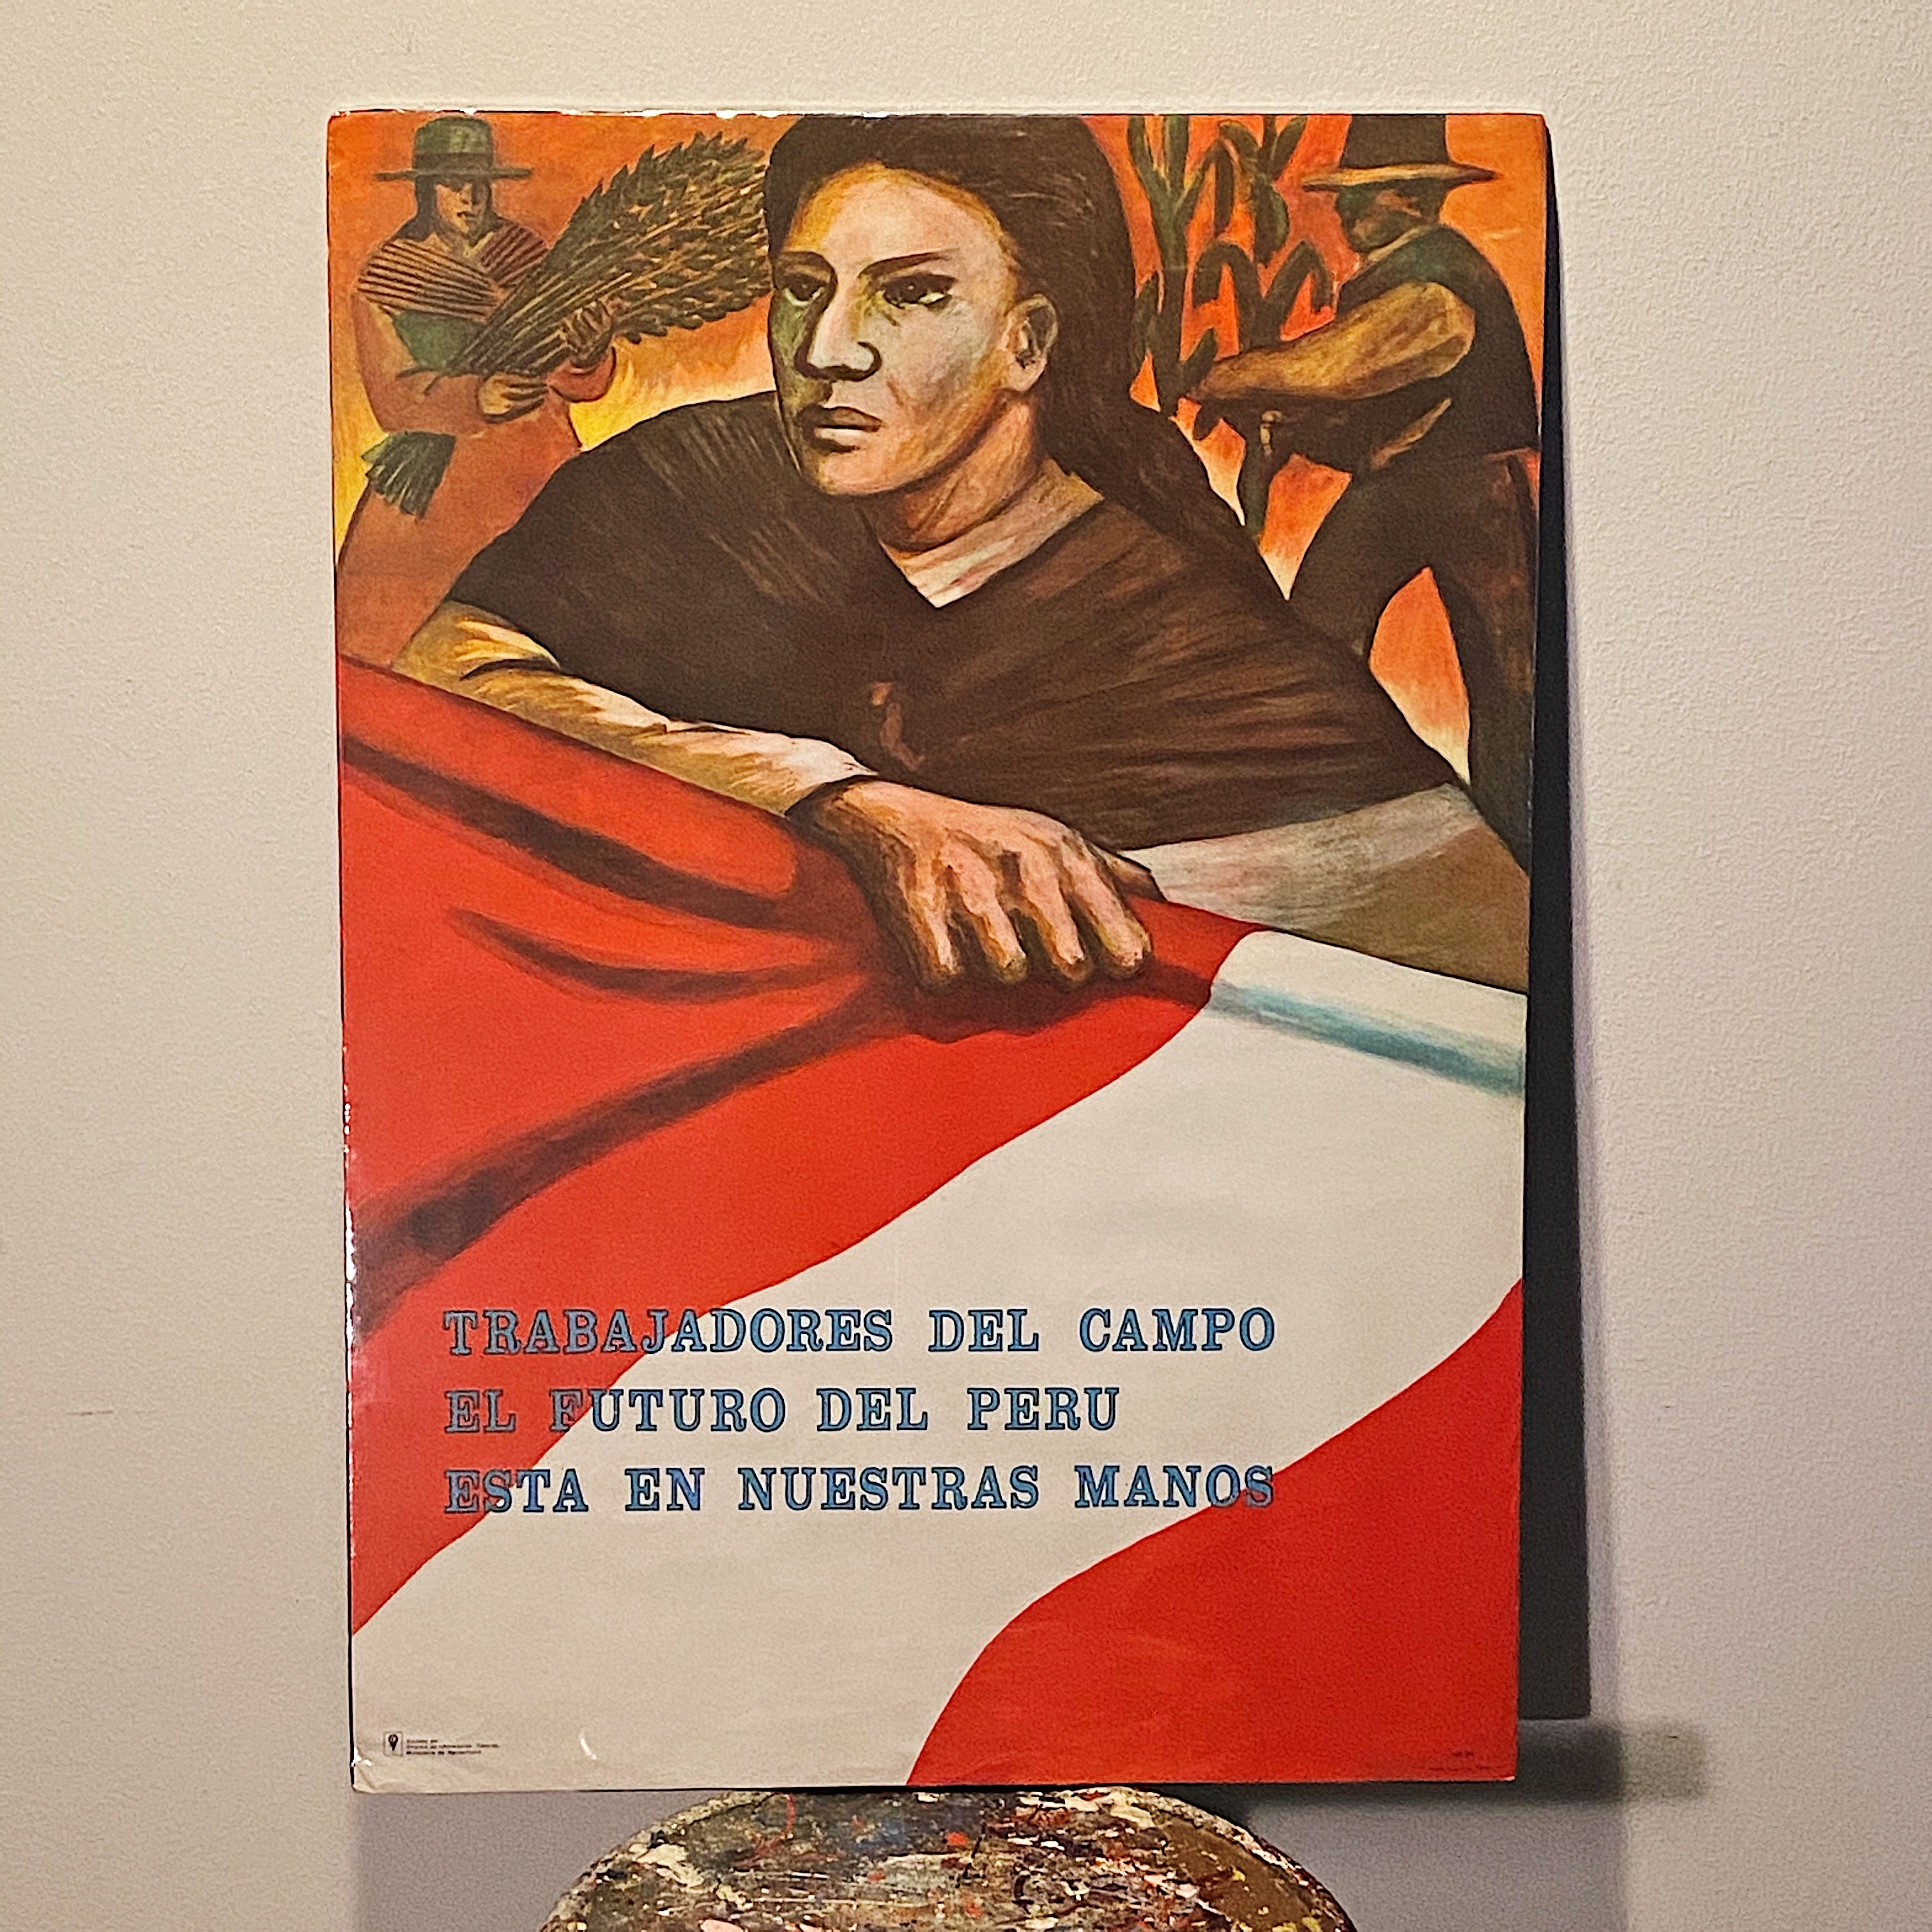 Rare Protest Poster from Peru 1960s? - WPA Style - Revolution Art - Agrarian Land Reform - Trabajadores - Oficino de Infomacion Técnico Full size